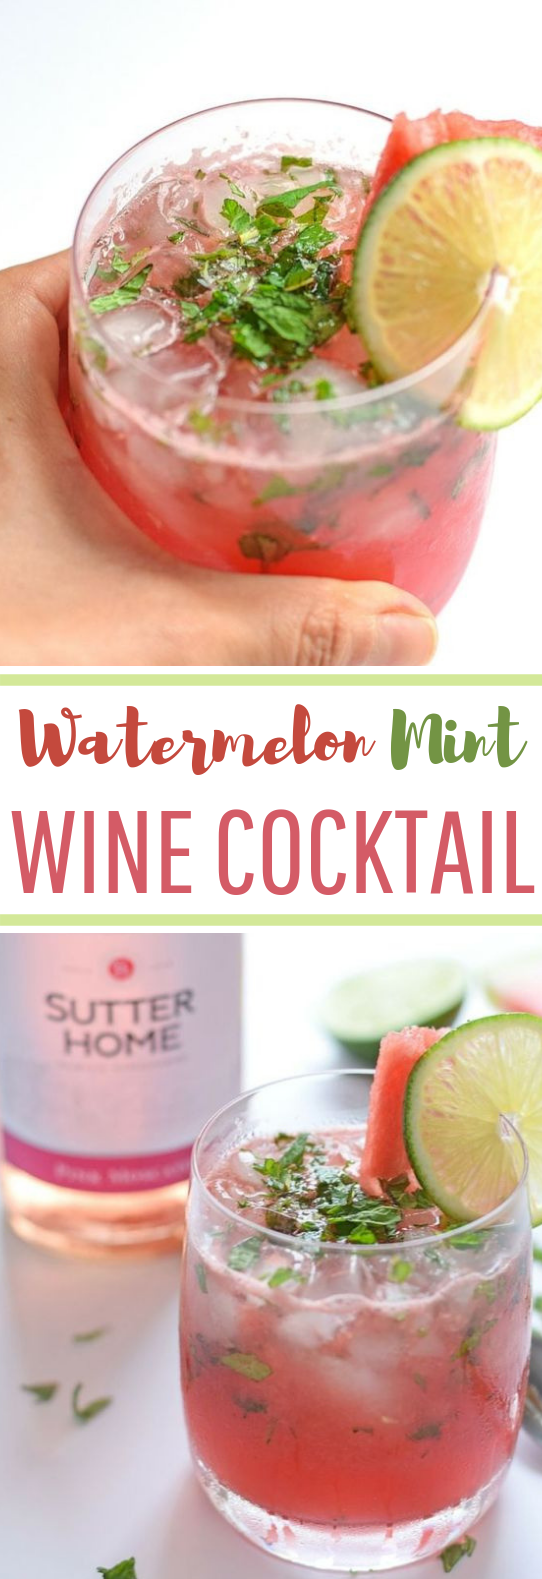 Watermelon Mint Wine Cocktail #summer #cocktail